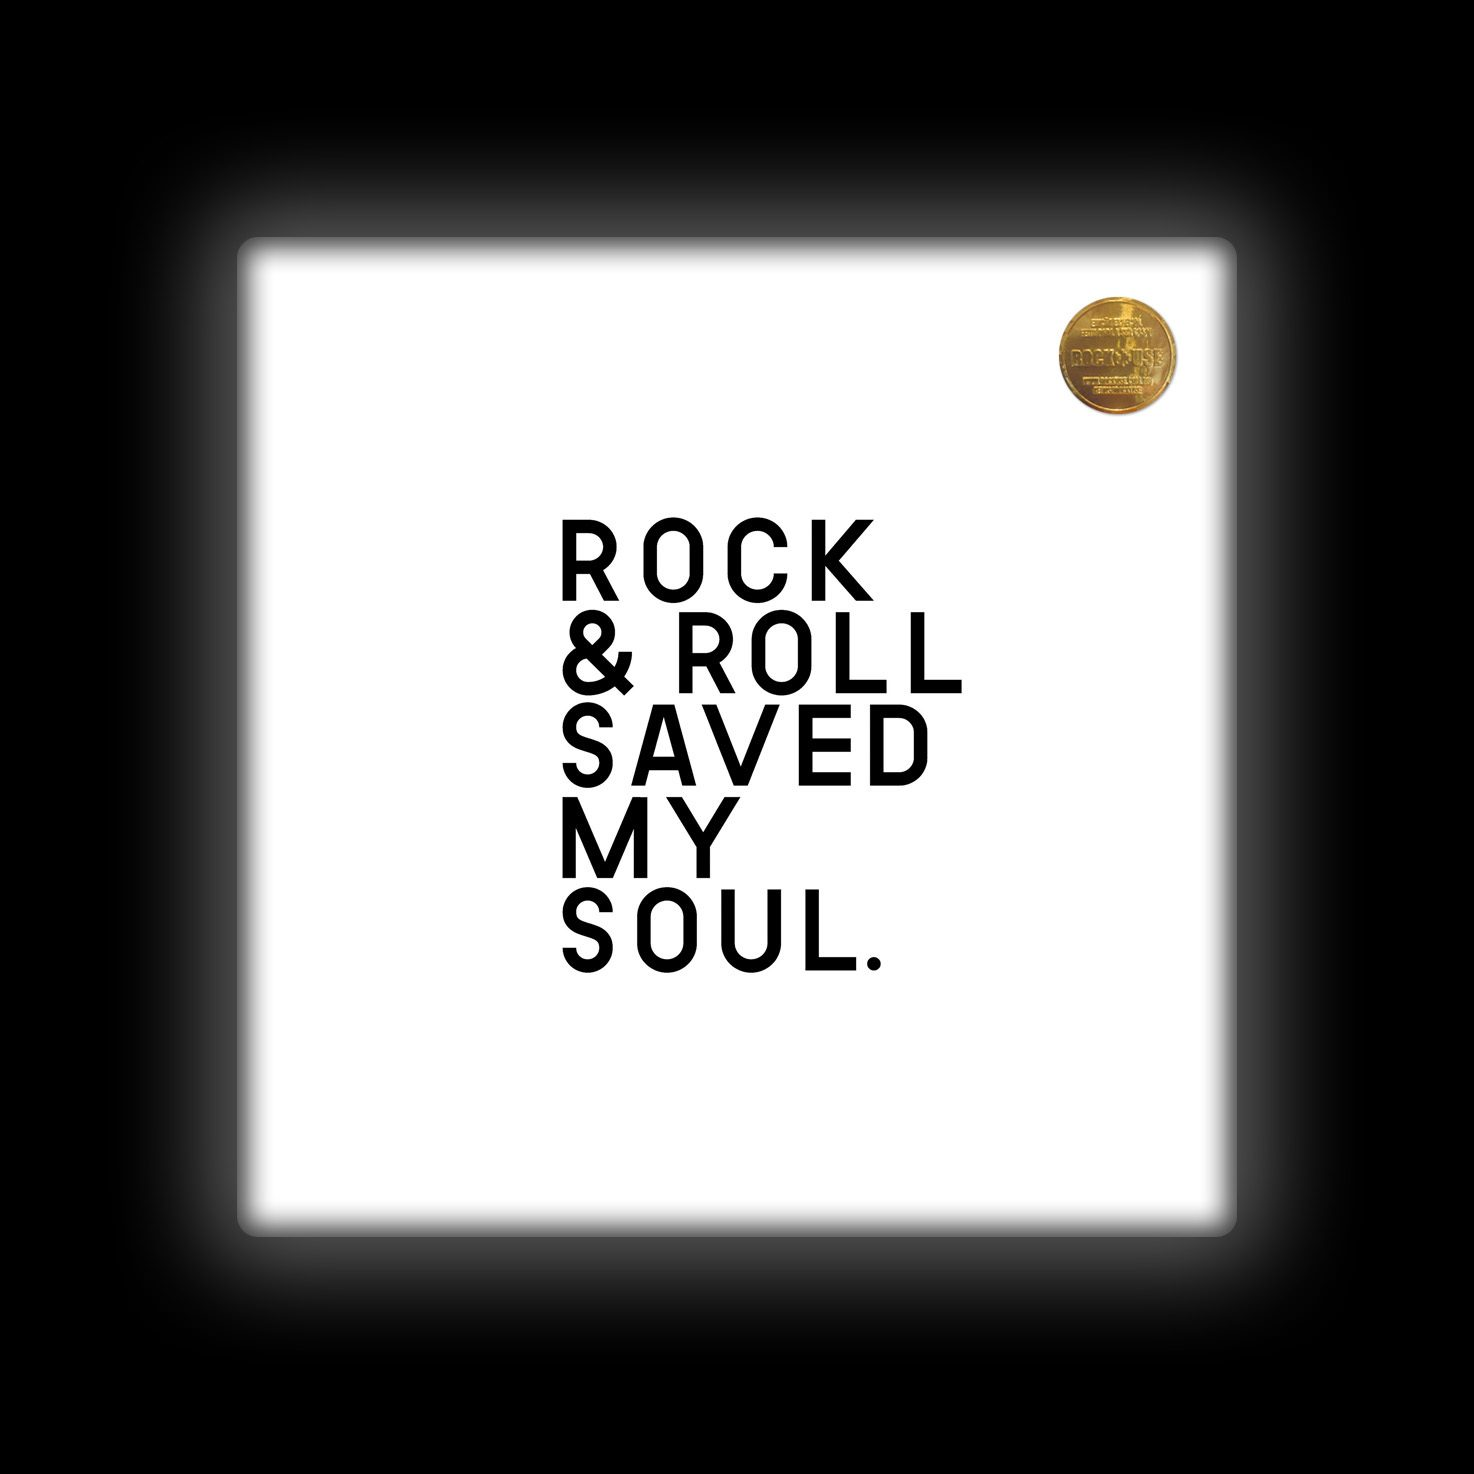 Capa de Almofada Rock Use - Rock & Roll Saved My Soul - Branca